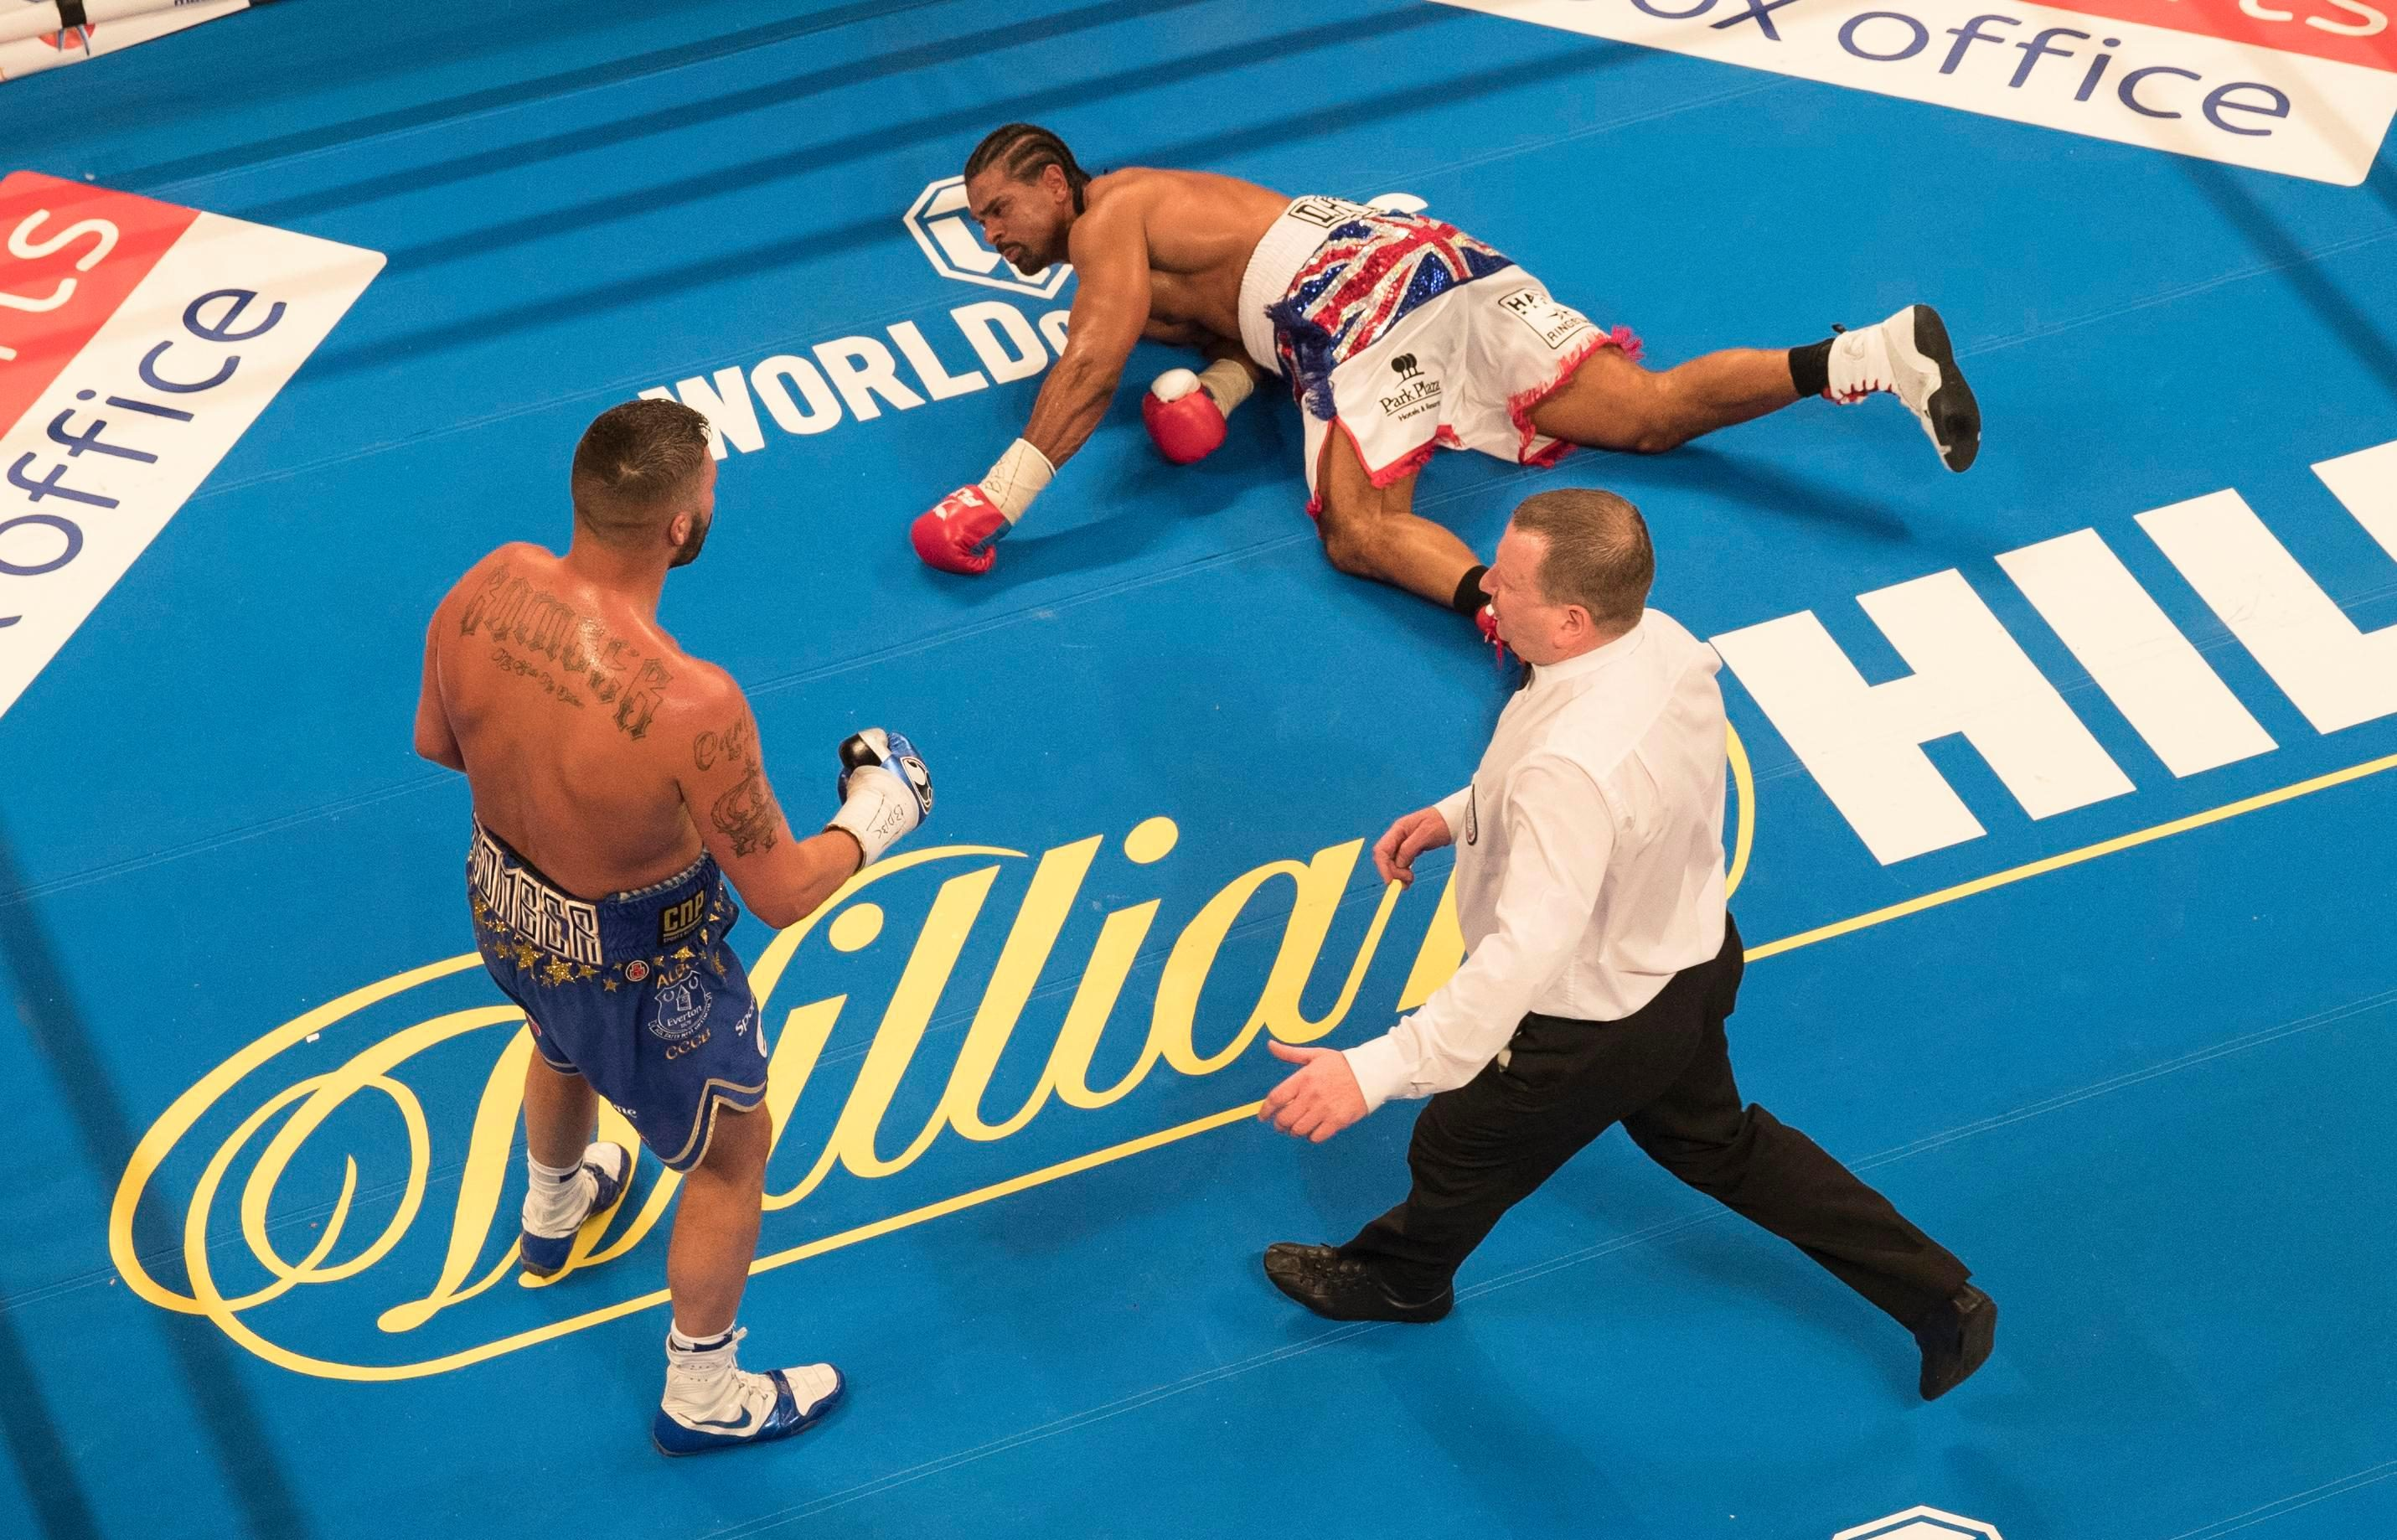 Haye landed only 42 punches to Bellew's 70 during their rematch in May